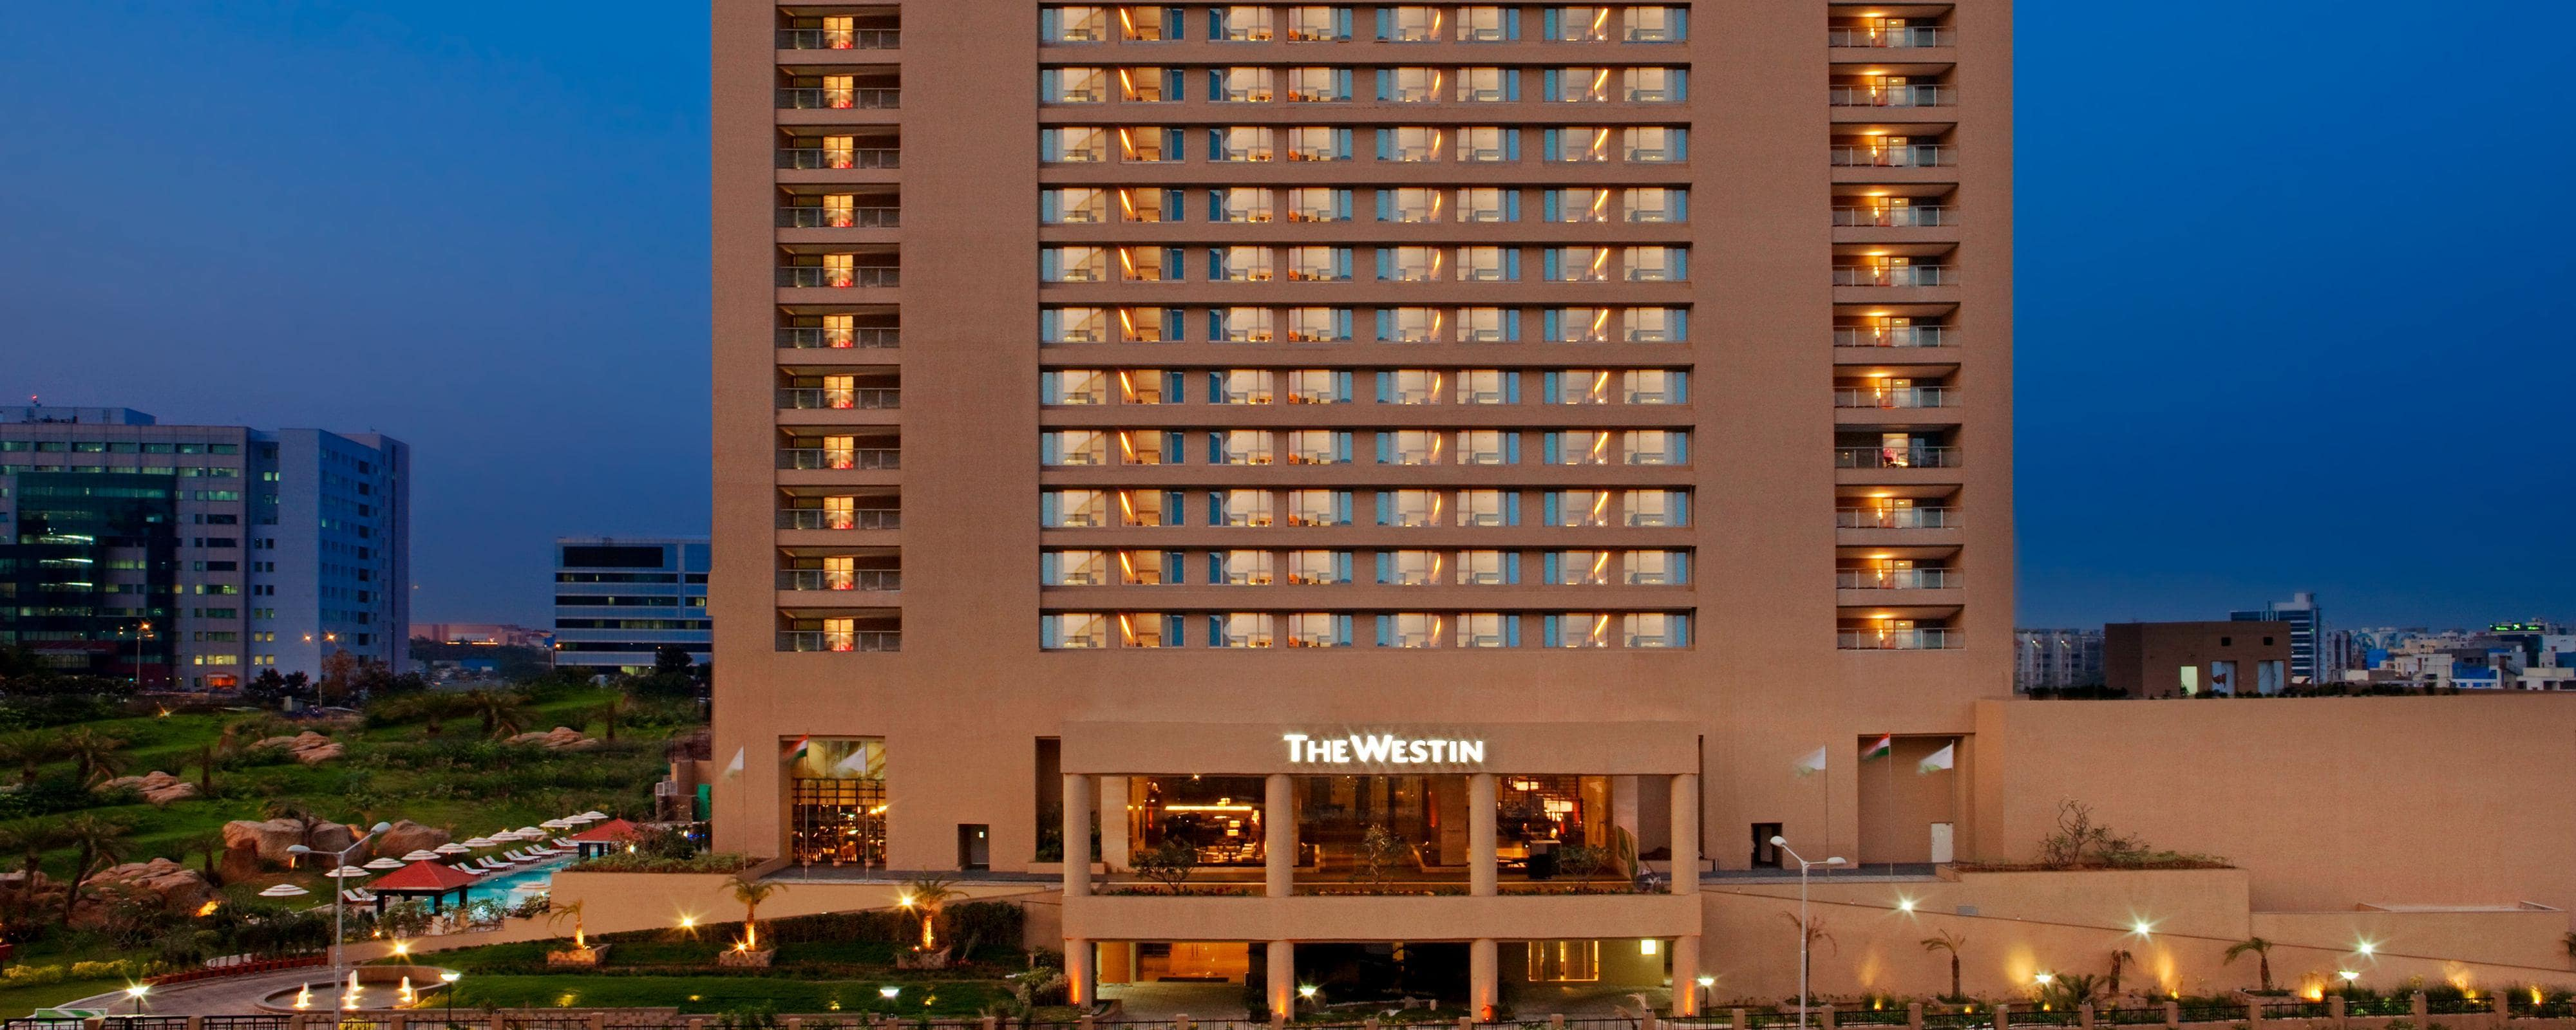 The Westin Hyderabad Mindspace Hyderabad Spg